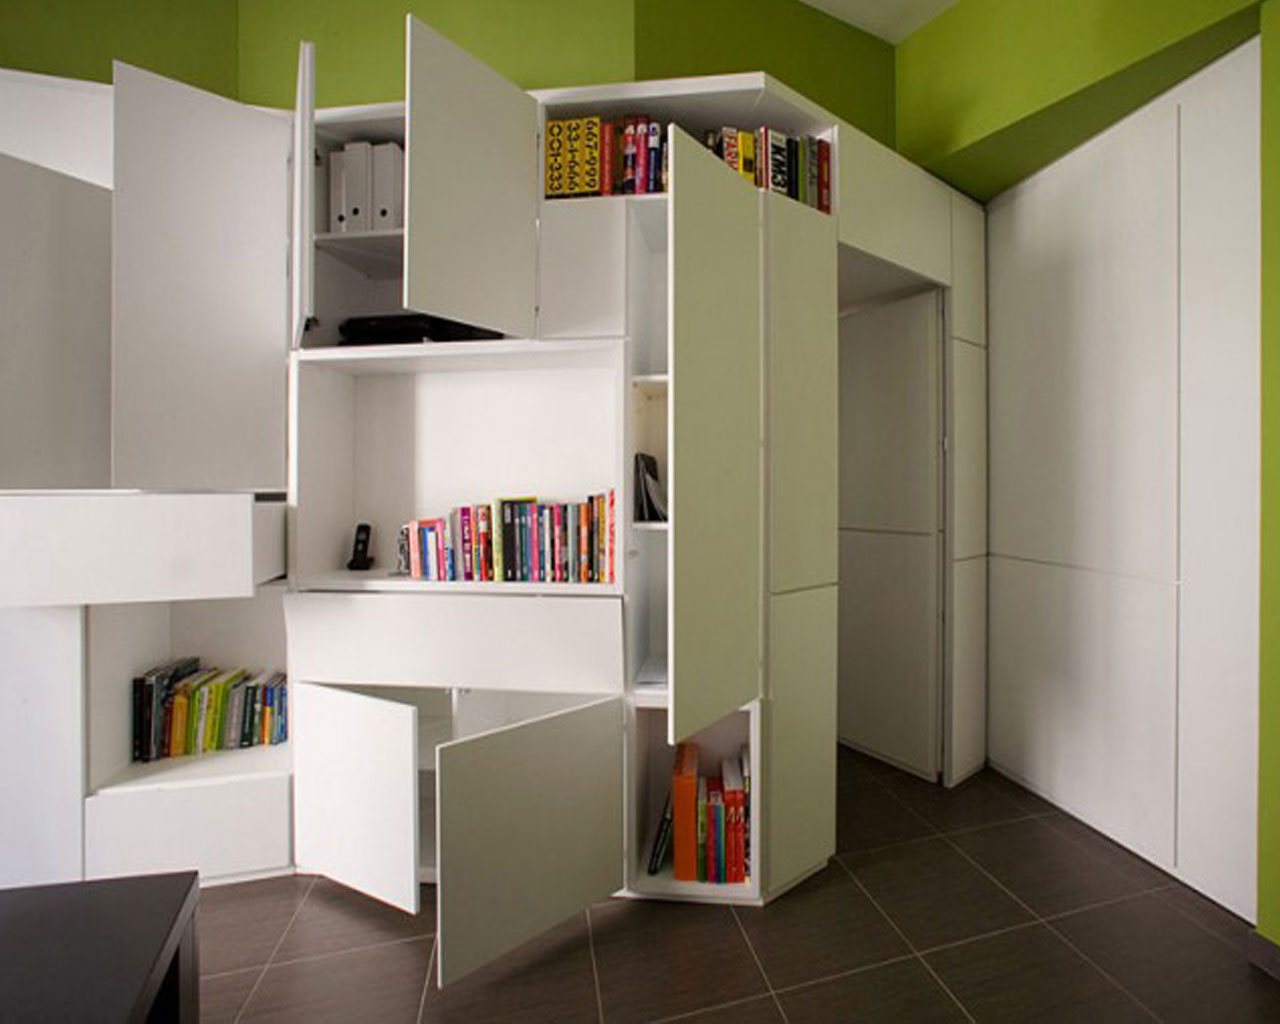 Storage Ideas for a Small Apartment - Betterimprovement.com